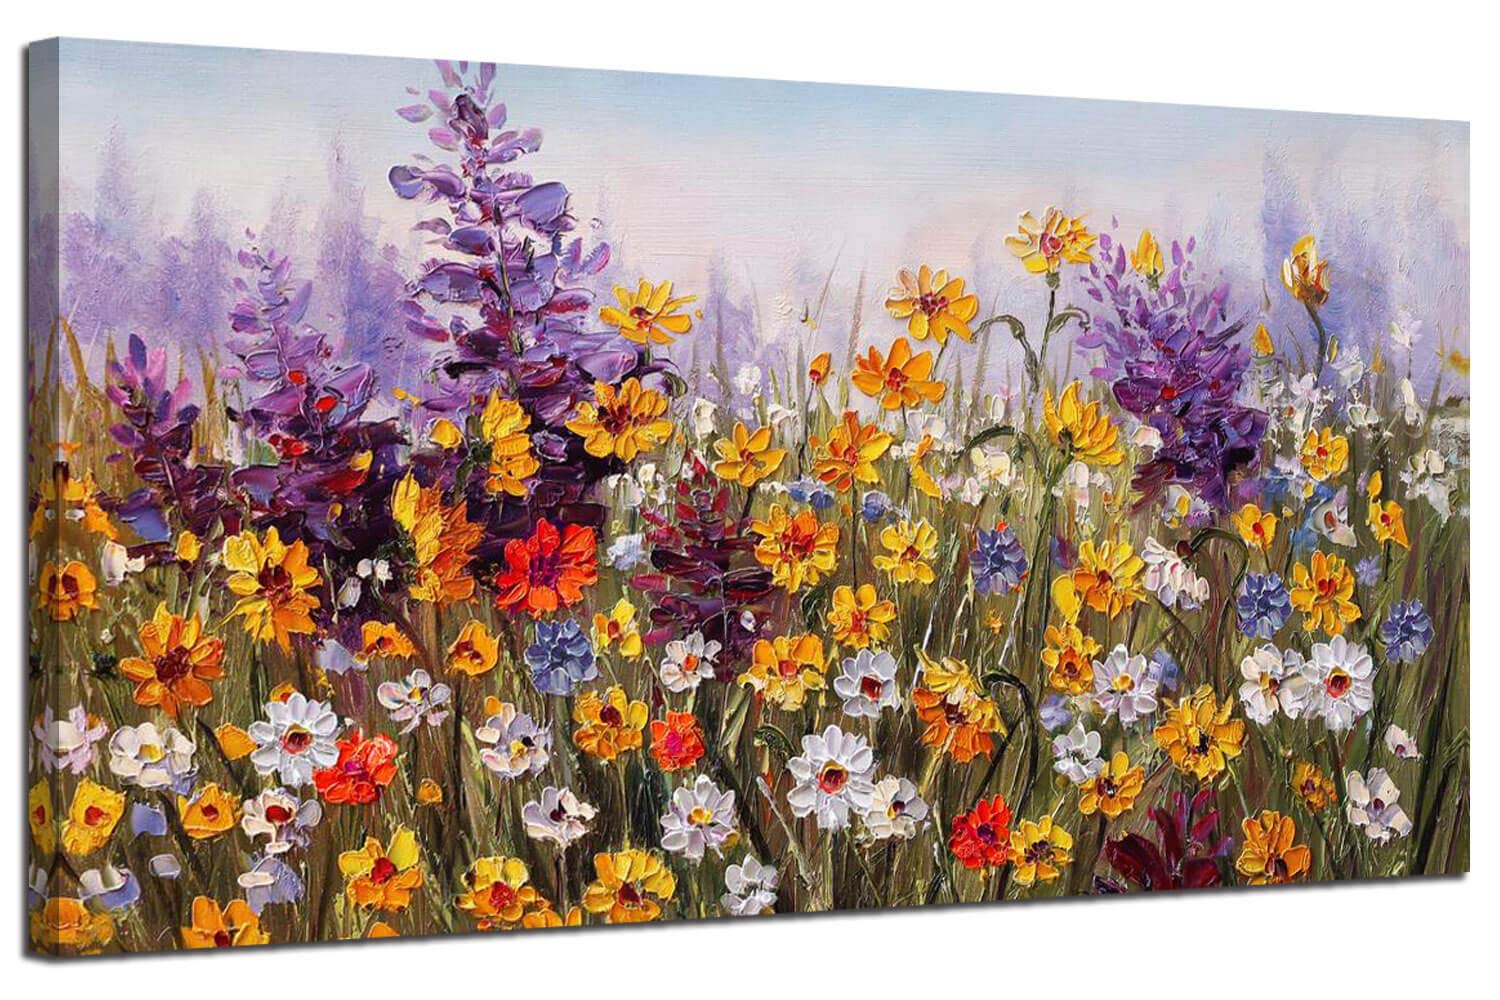 Ardemy Canvas Wall Art Daisy Colorful Bloosom Flowers Artwork Painting Prints Modern Landscape, Purple Floral Picture Framed for Living Room Bedroom Kitchen Dinning Room Office Home Decor- 40